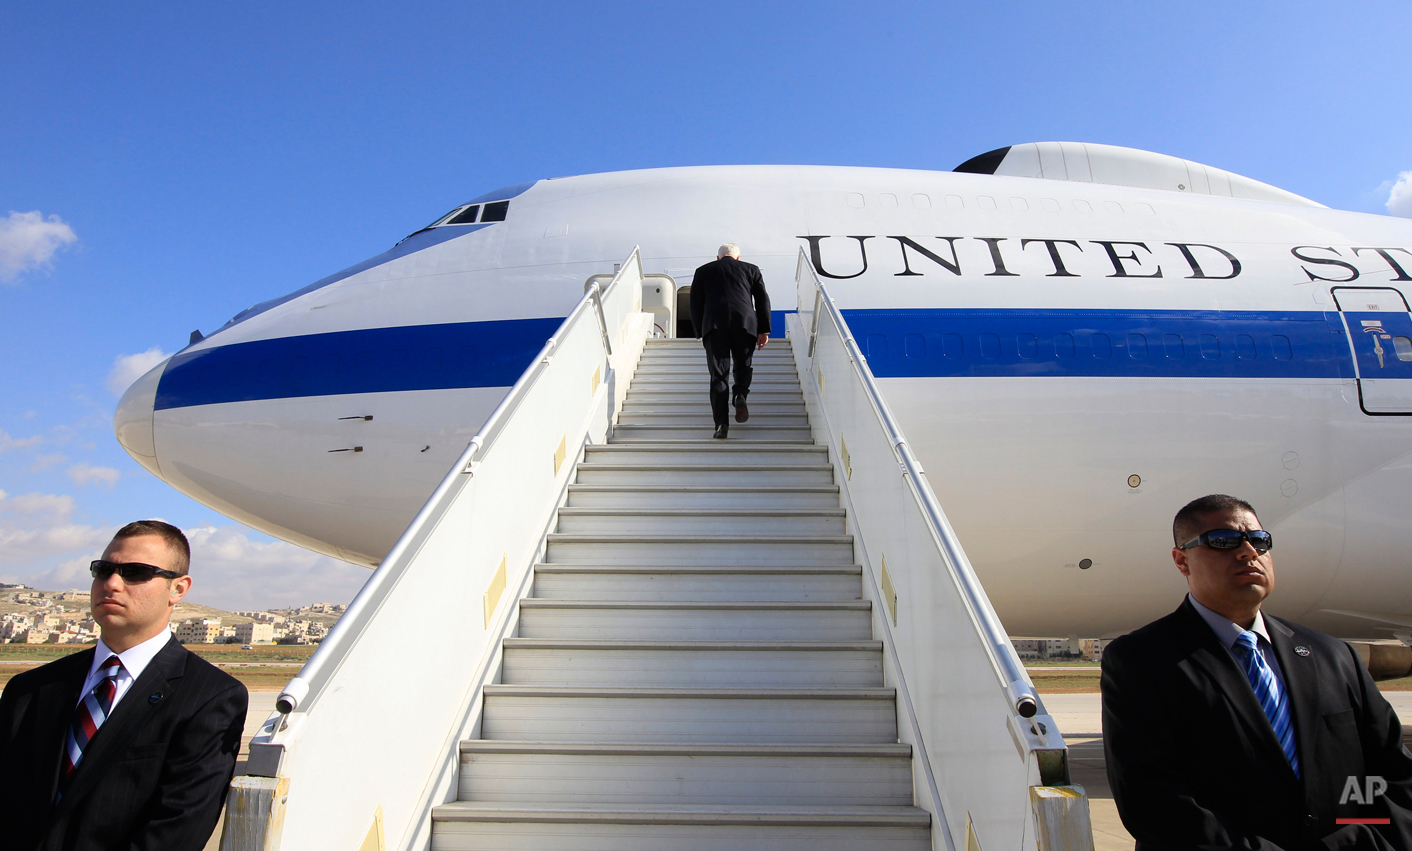 Defense Secretary Robert Gates boards his military aircraft in Amman, Jordan, Friday, March 25, 2011, after a private meeting with Jordan's King Abdullah II. (AP Photo/Charles Dharapak, Pool)